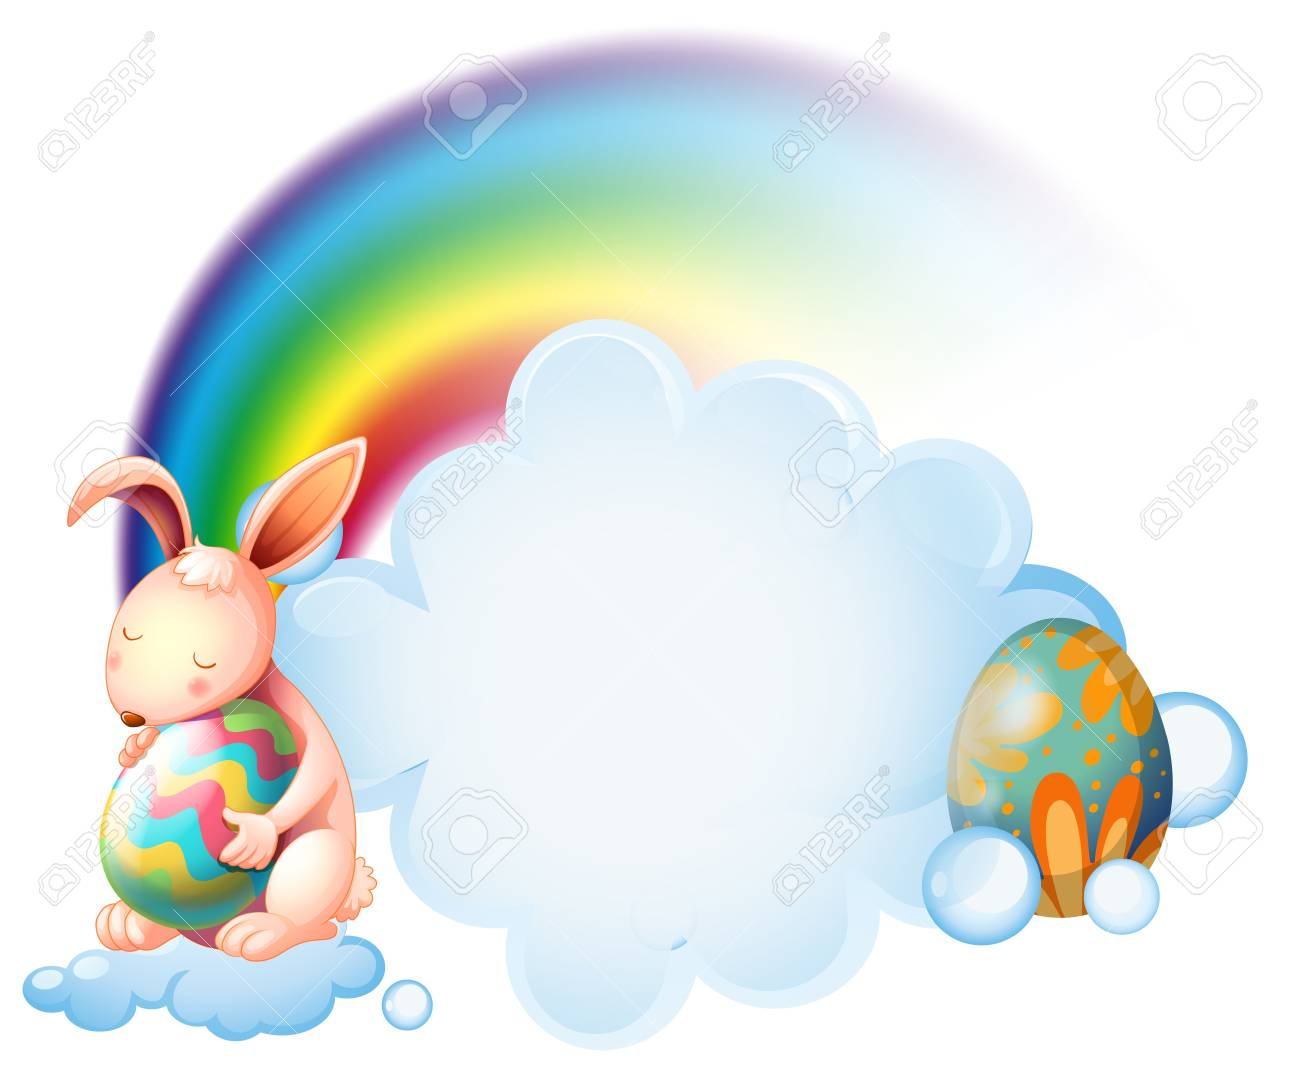 Illustration of a bunny hugging an easter egg near the rainbow on a white background Stock Vector - 18549536